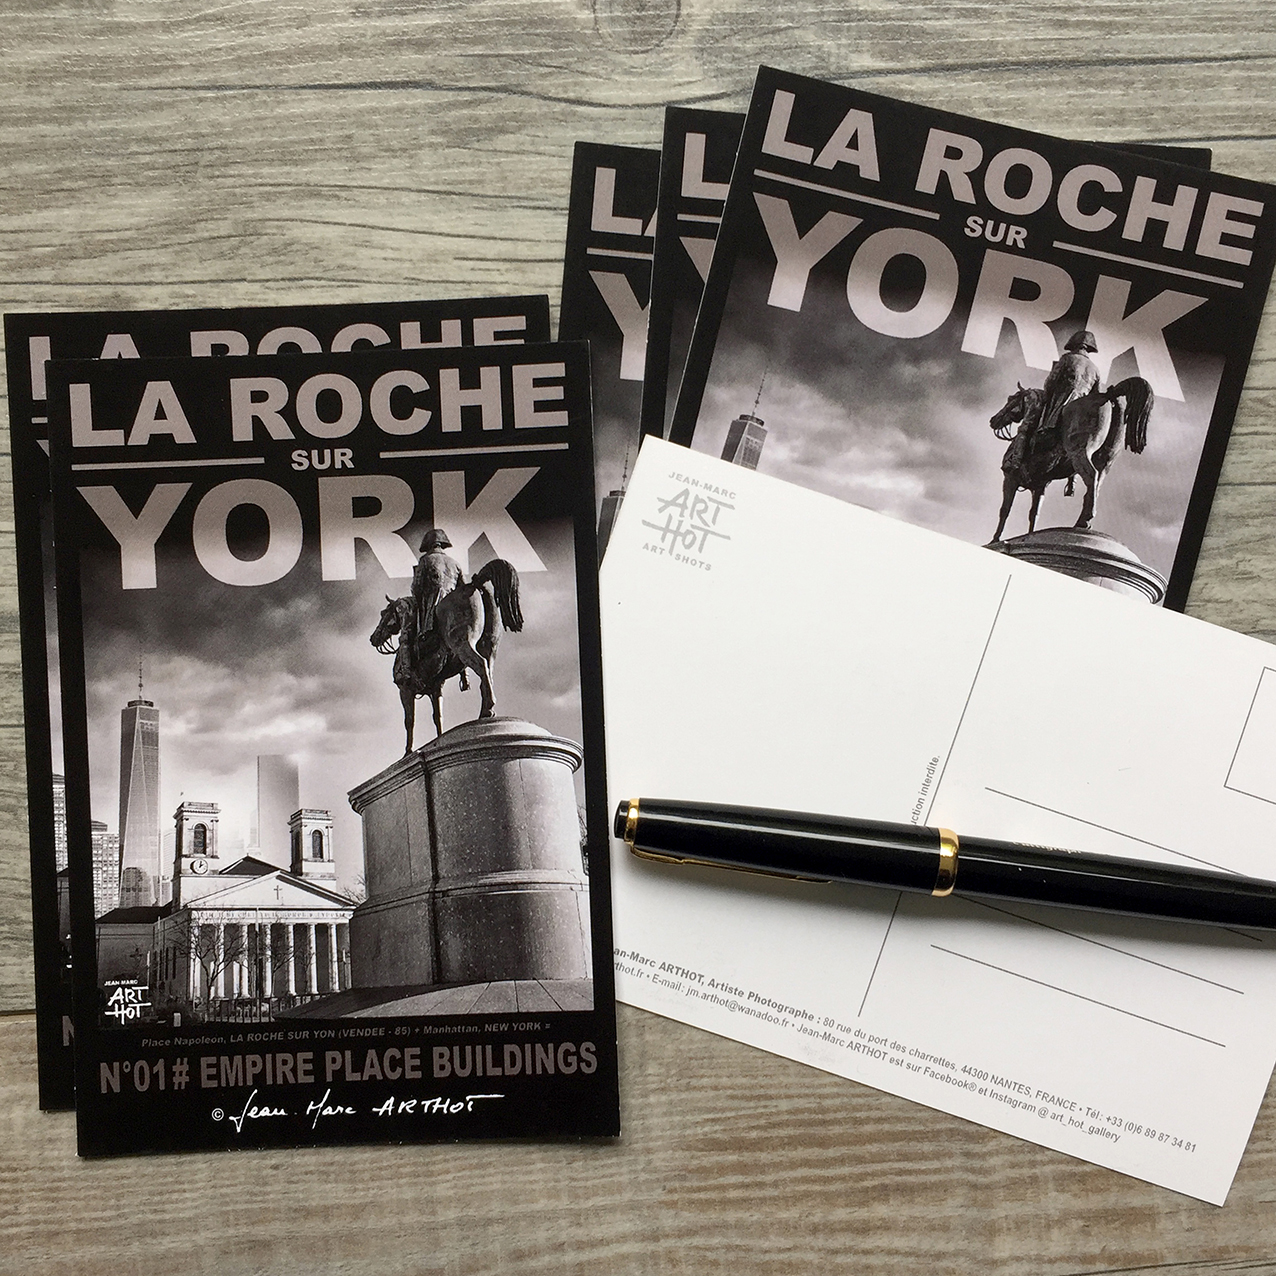 LOT A - 5 CARTES POSTALES LA ROCHE SUR YORK - Empire Place Buildings